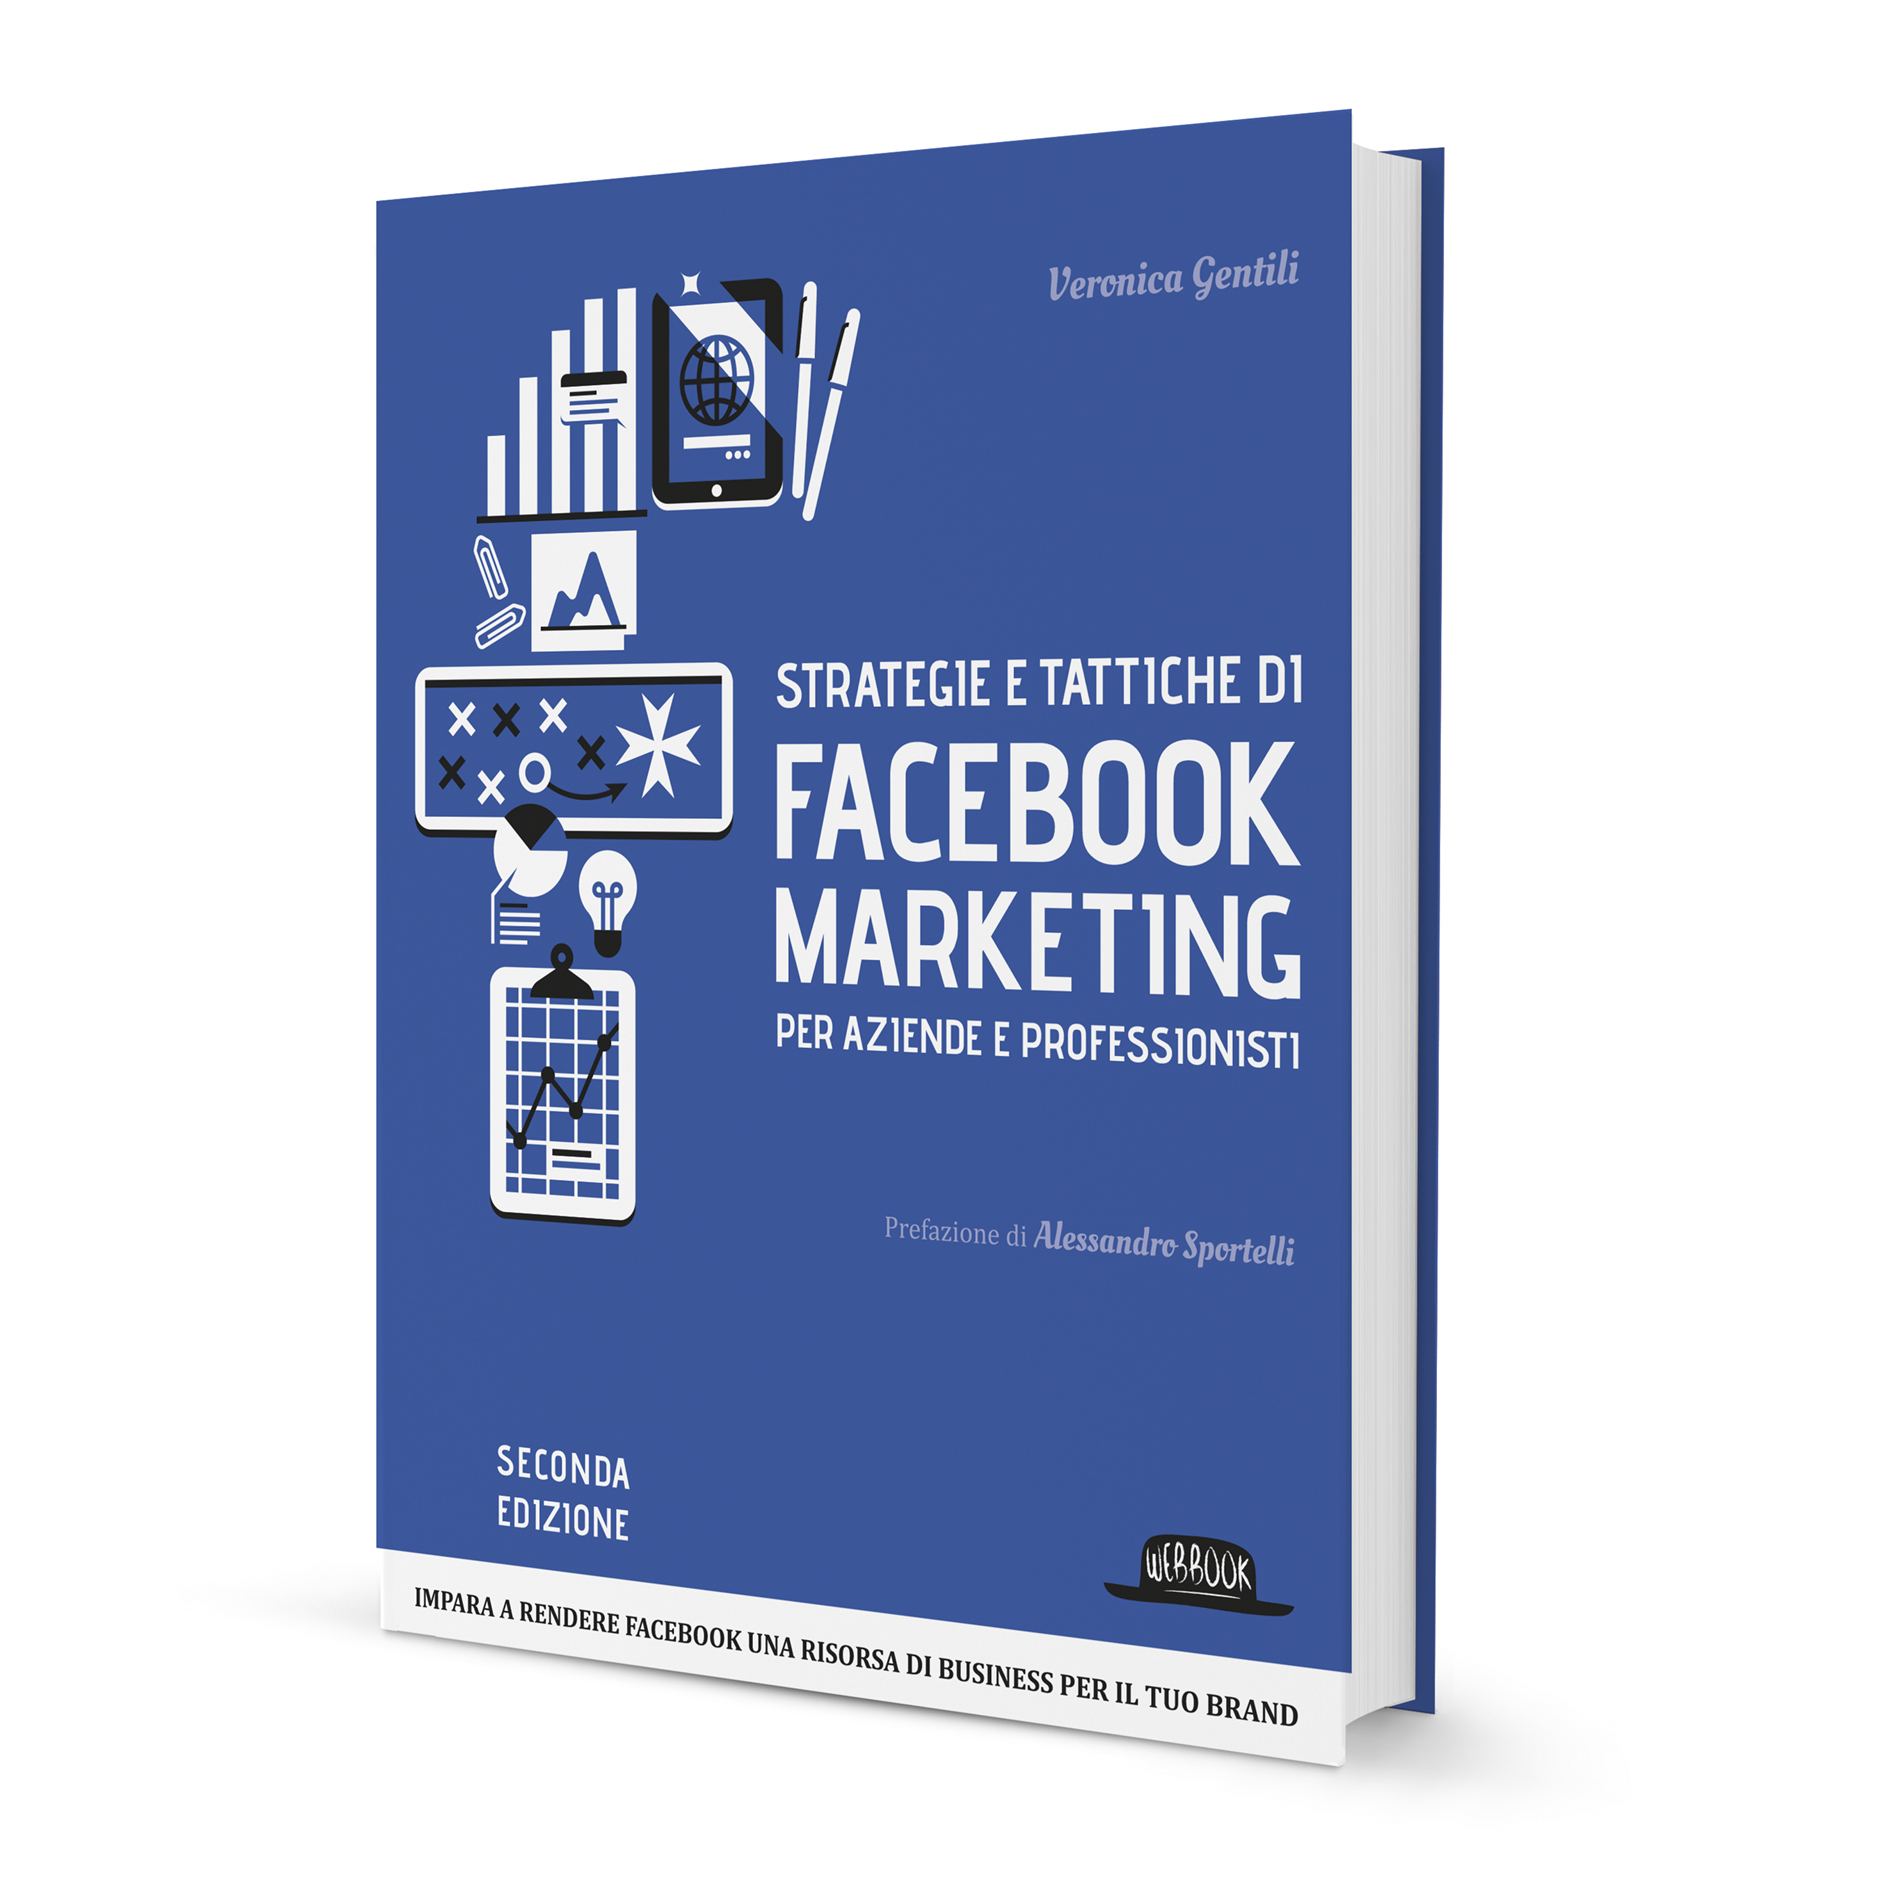 facebook e marketing Marketing on facebook can help you to efficiently reach all of the people who matter most here's an overview of how facebook pages and ads work for businesses.